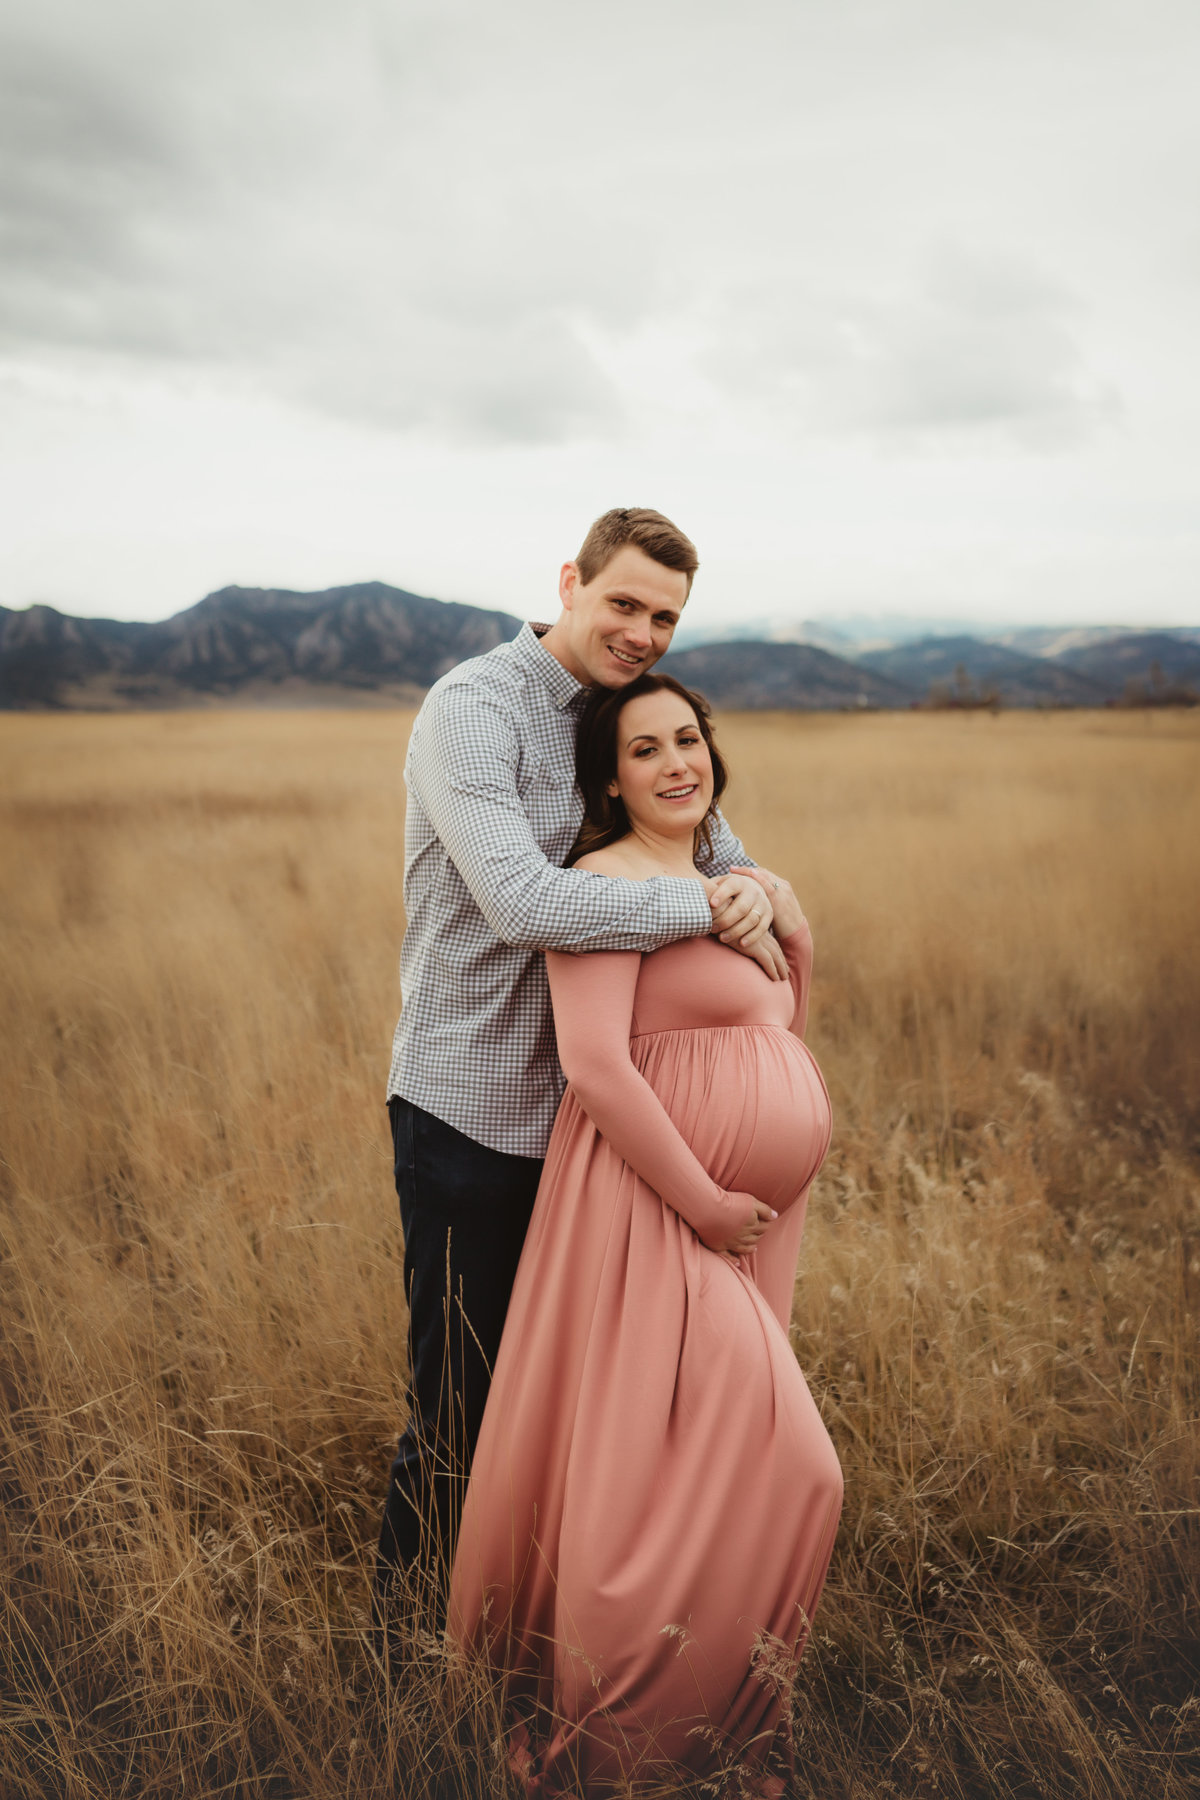 Couples Maternity Pictures Colorado Mountains